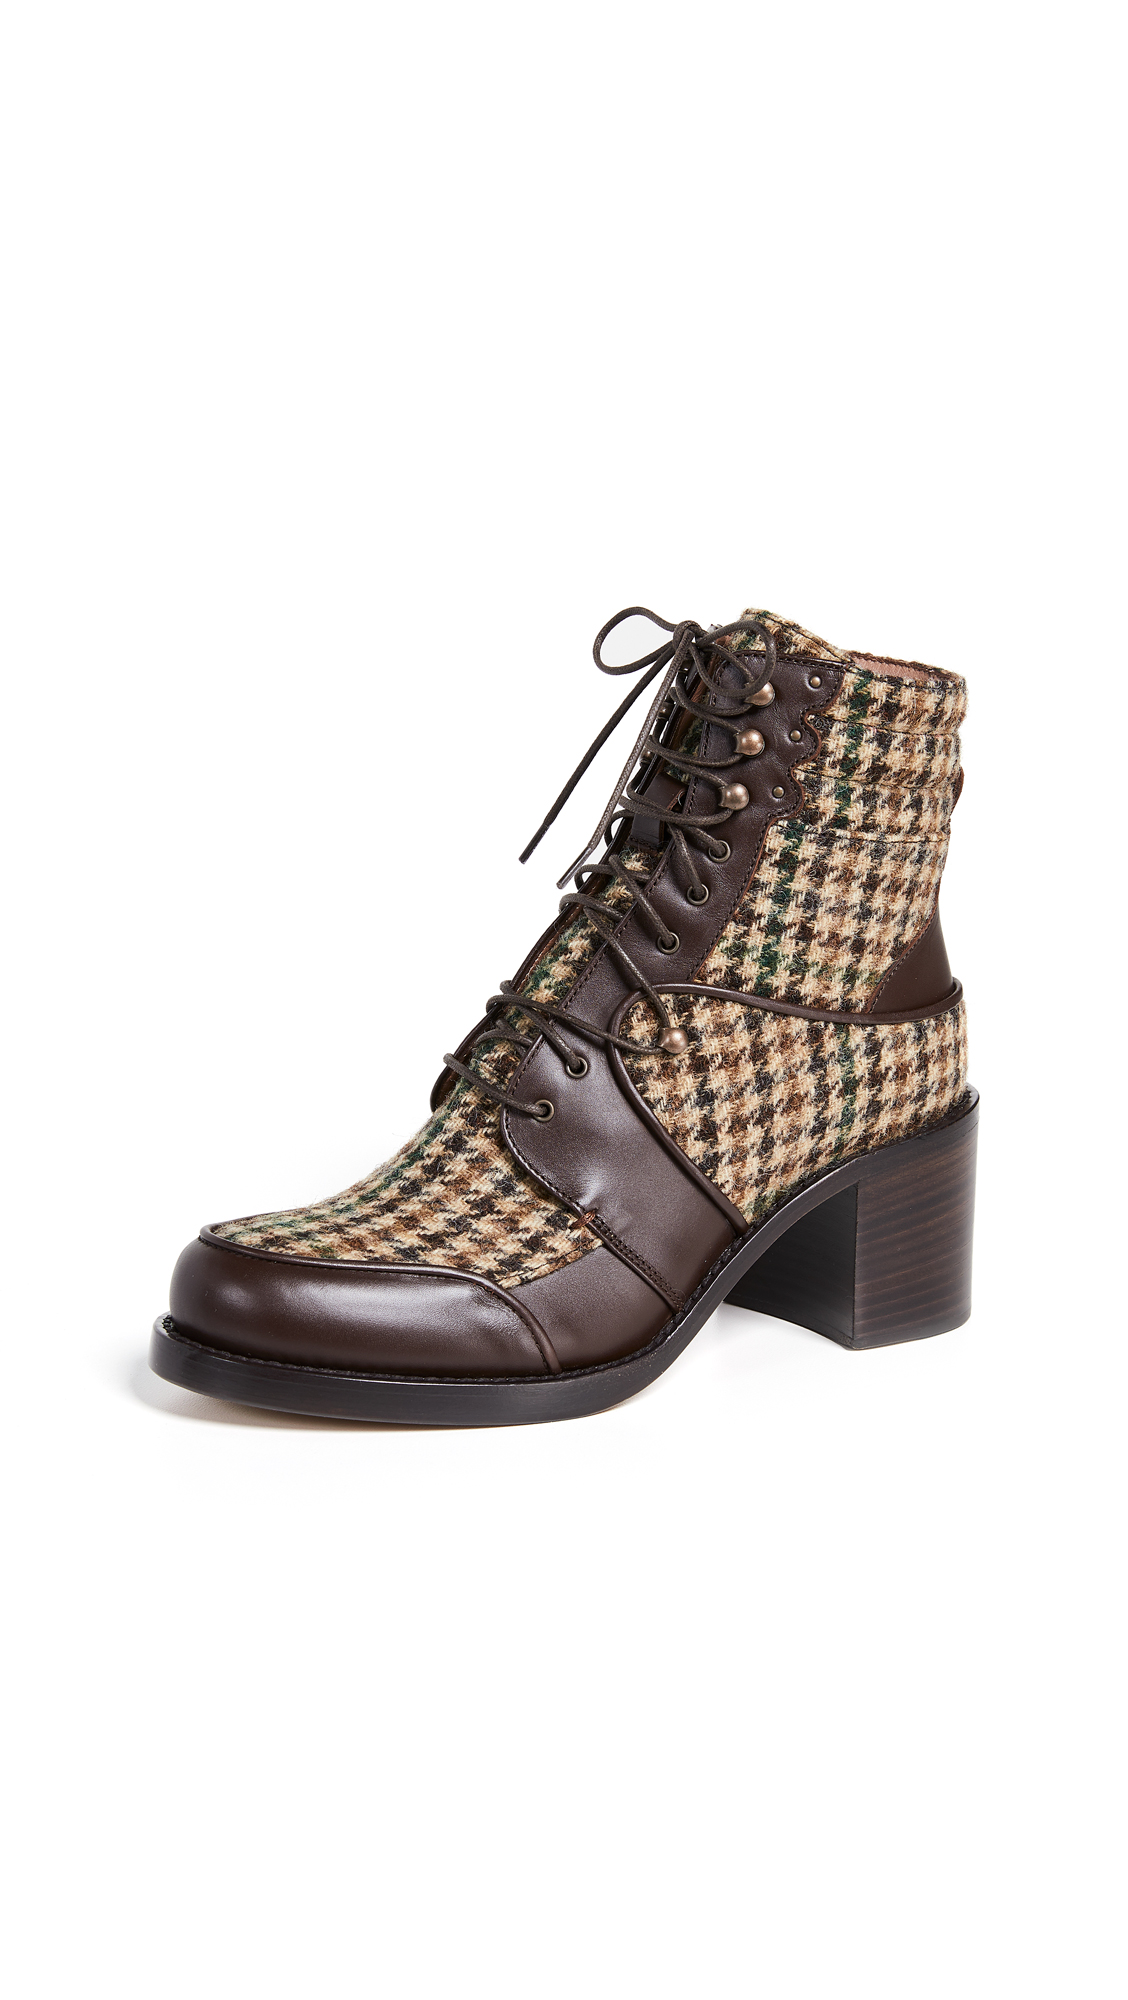 Tabitha Simmons Leo Lace Up Plaid Boots - Green Tweed/Brown